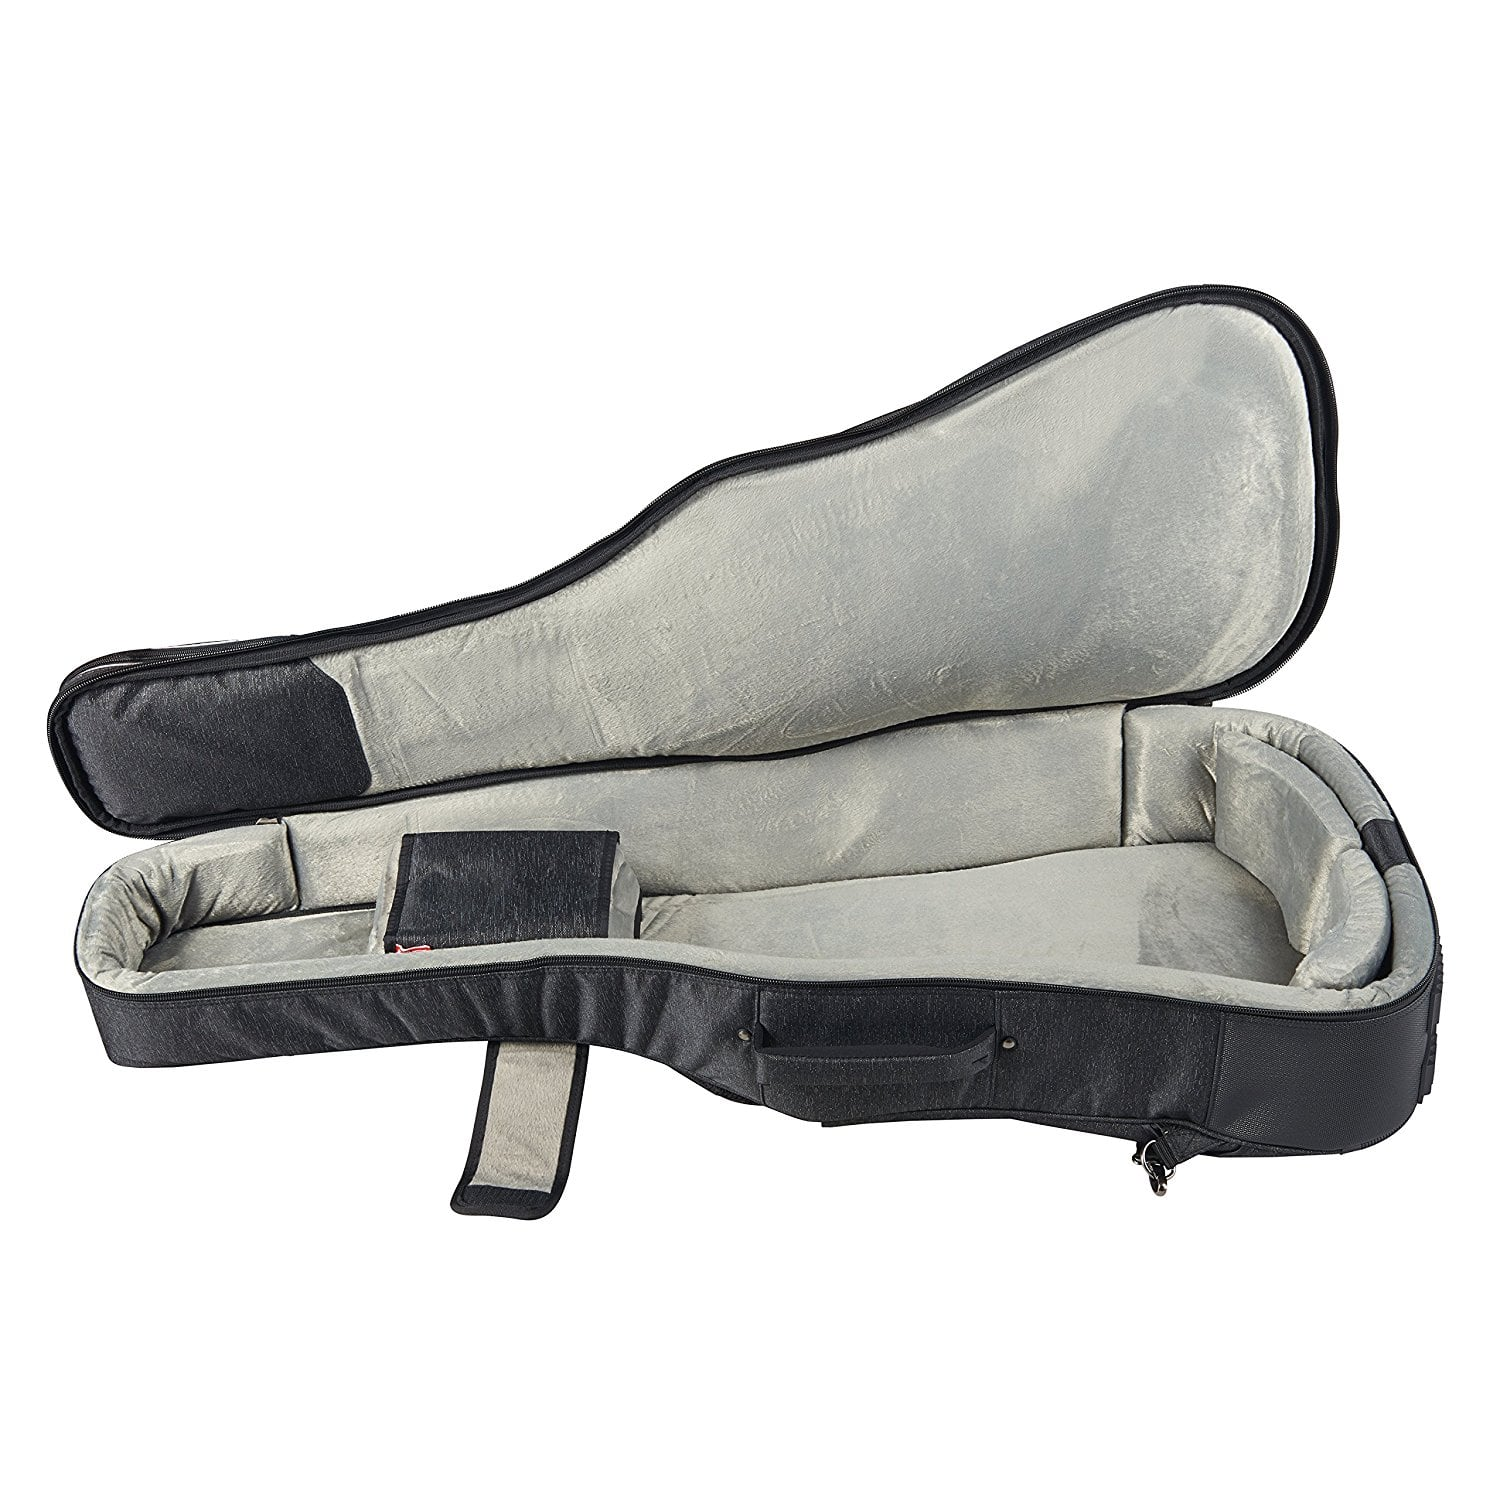 TANG30 Dual Guitar Gig Bag Waterproof 30mm cushion - Black  $45.99  + 20% PD  SAVE  over $100 off MSRP Single Gig Available too!!!